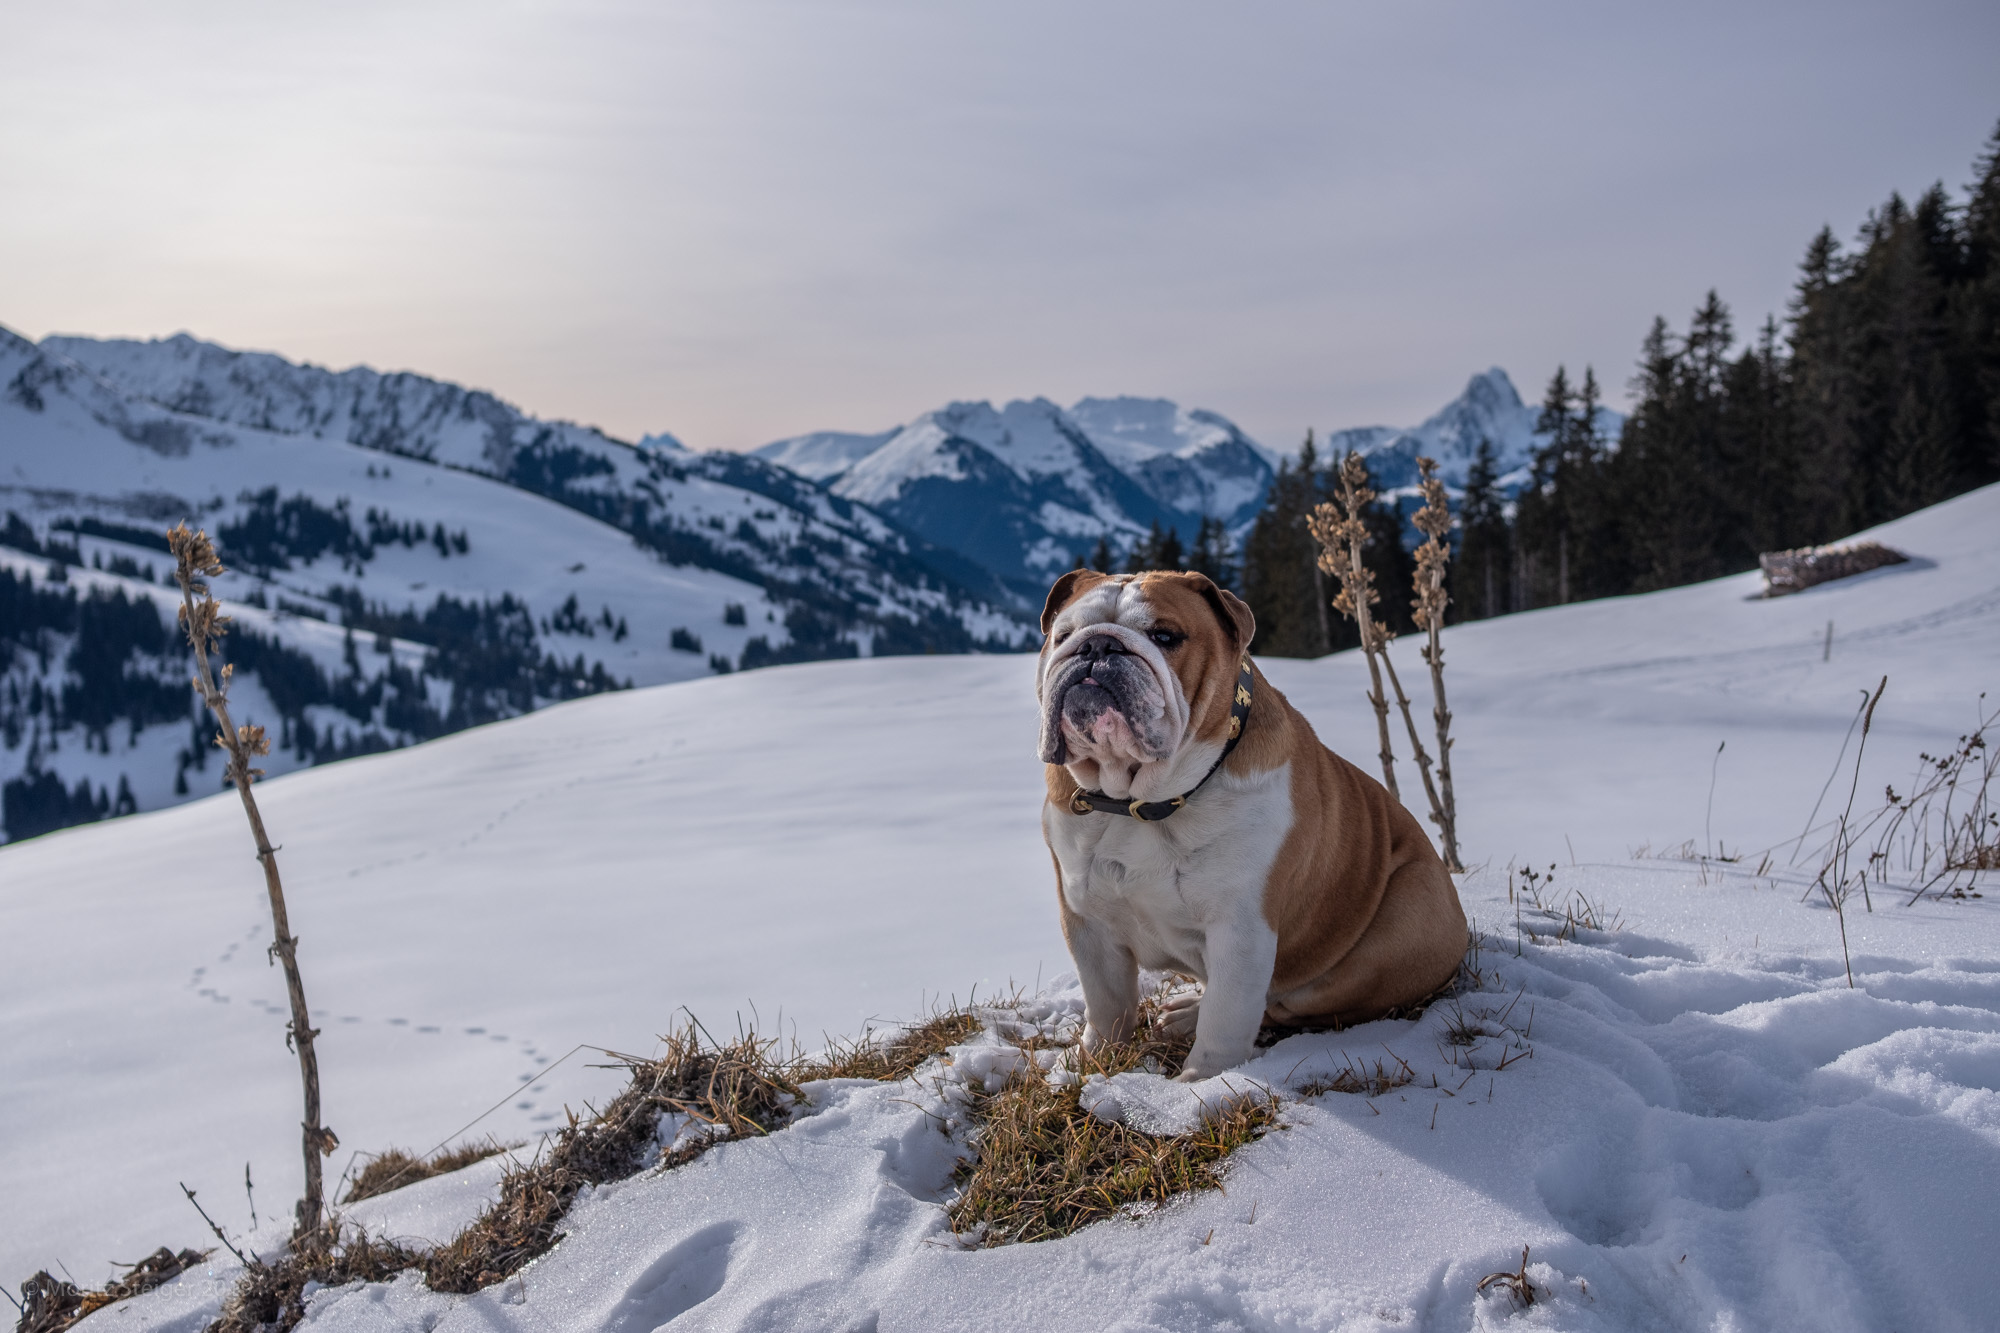 Rudy in Berner Oberland, Switzerland